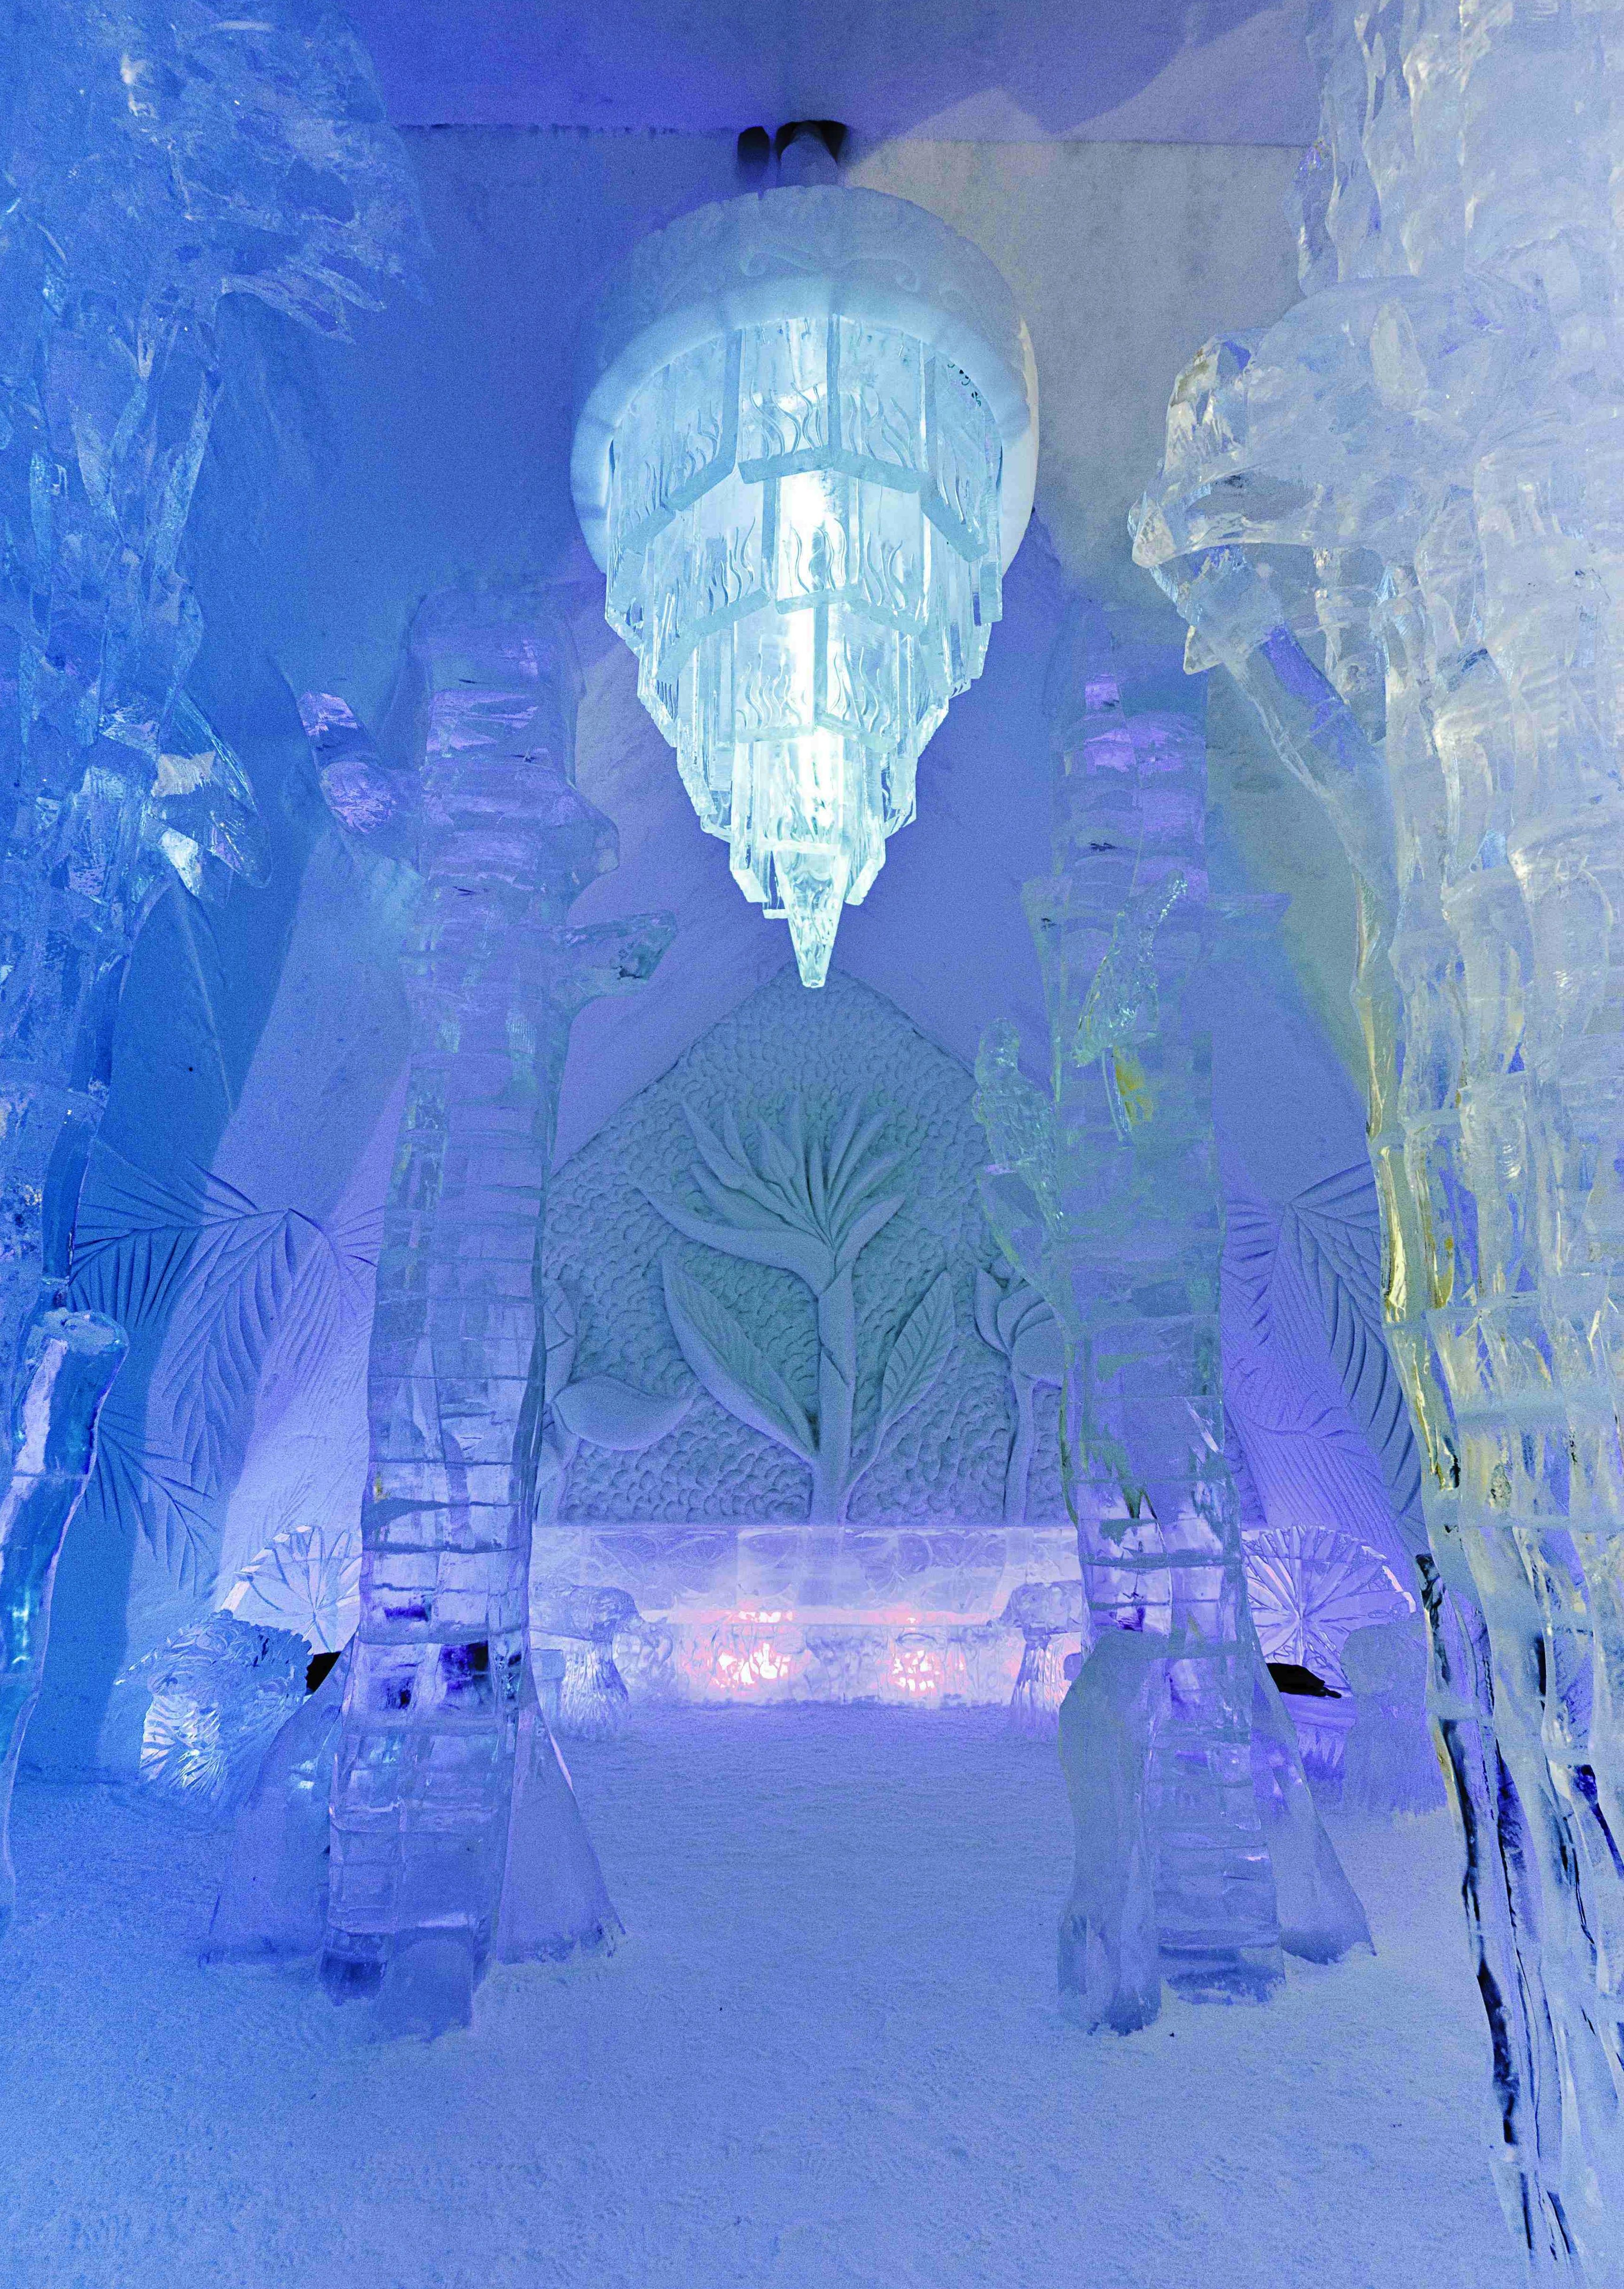 Peek Hotel De Glace In Quebec City 2019 Travel